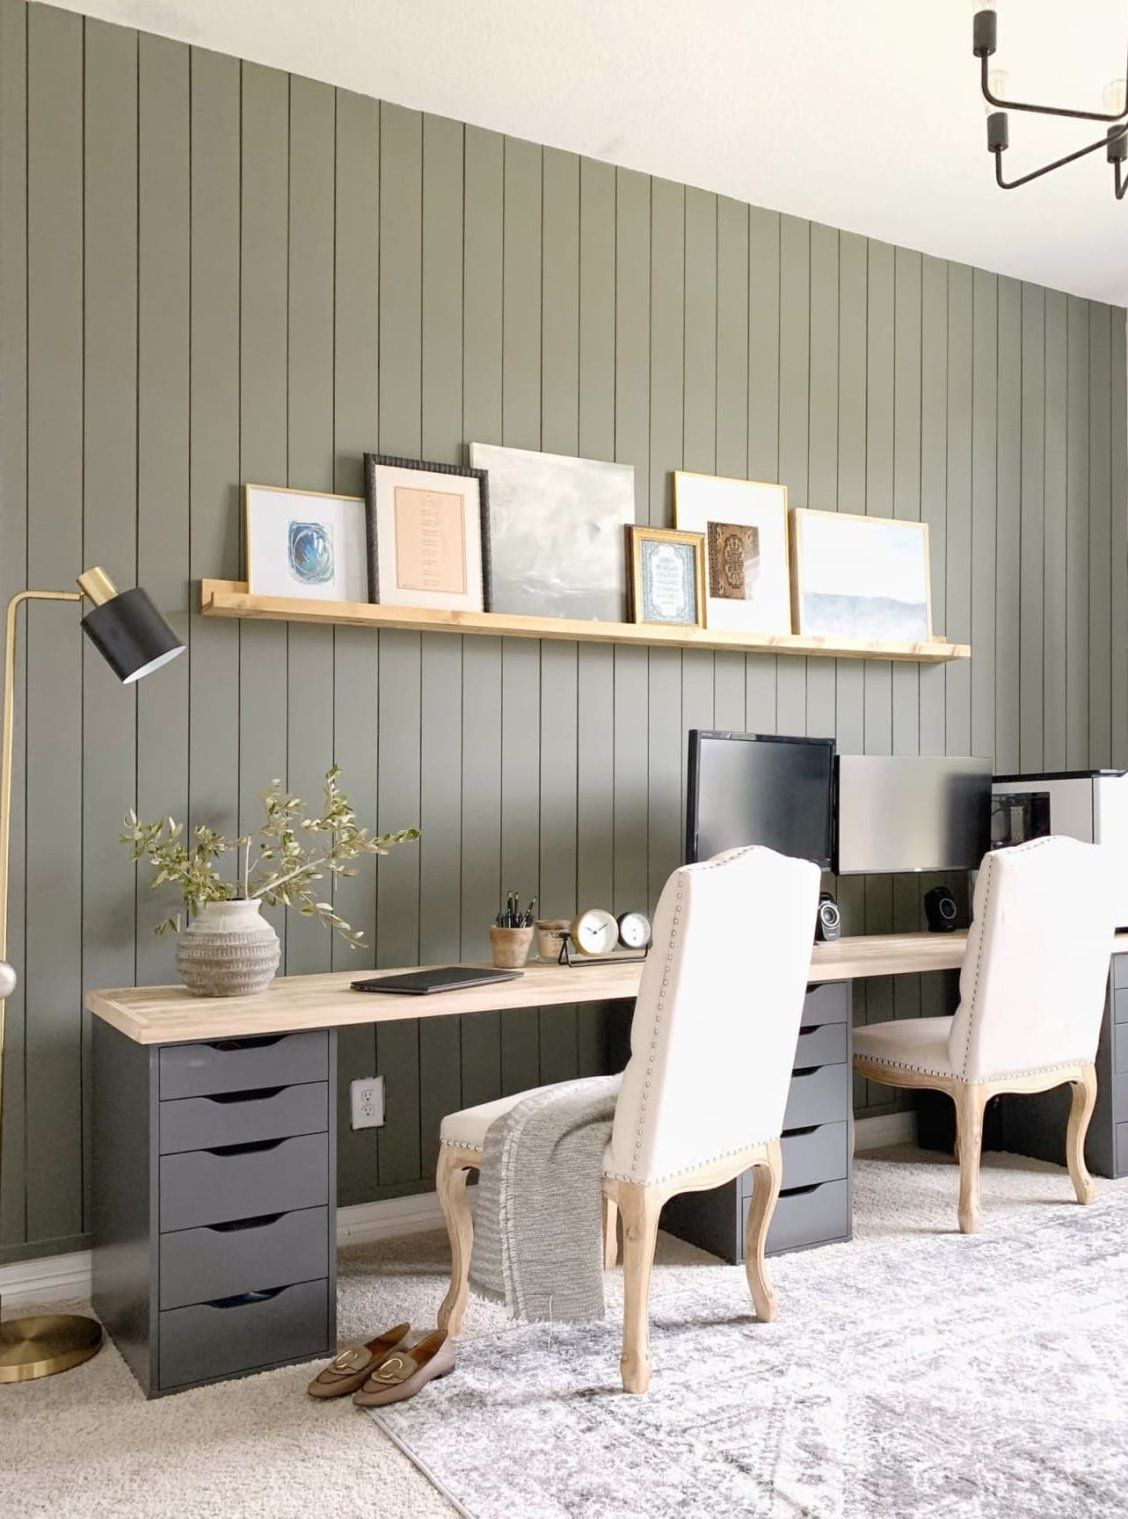 Before and After: A Smart IKEA Hack Makes This Home Office Extra